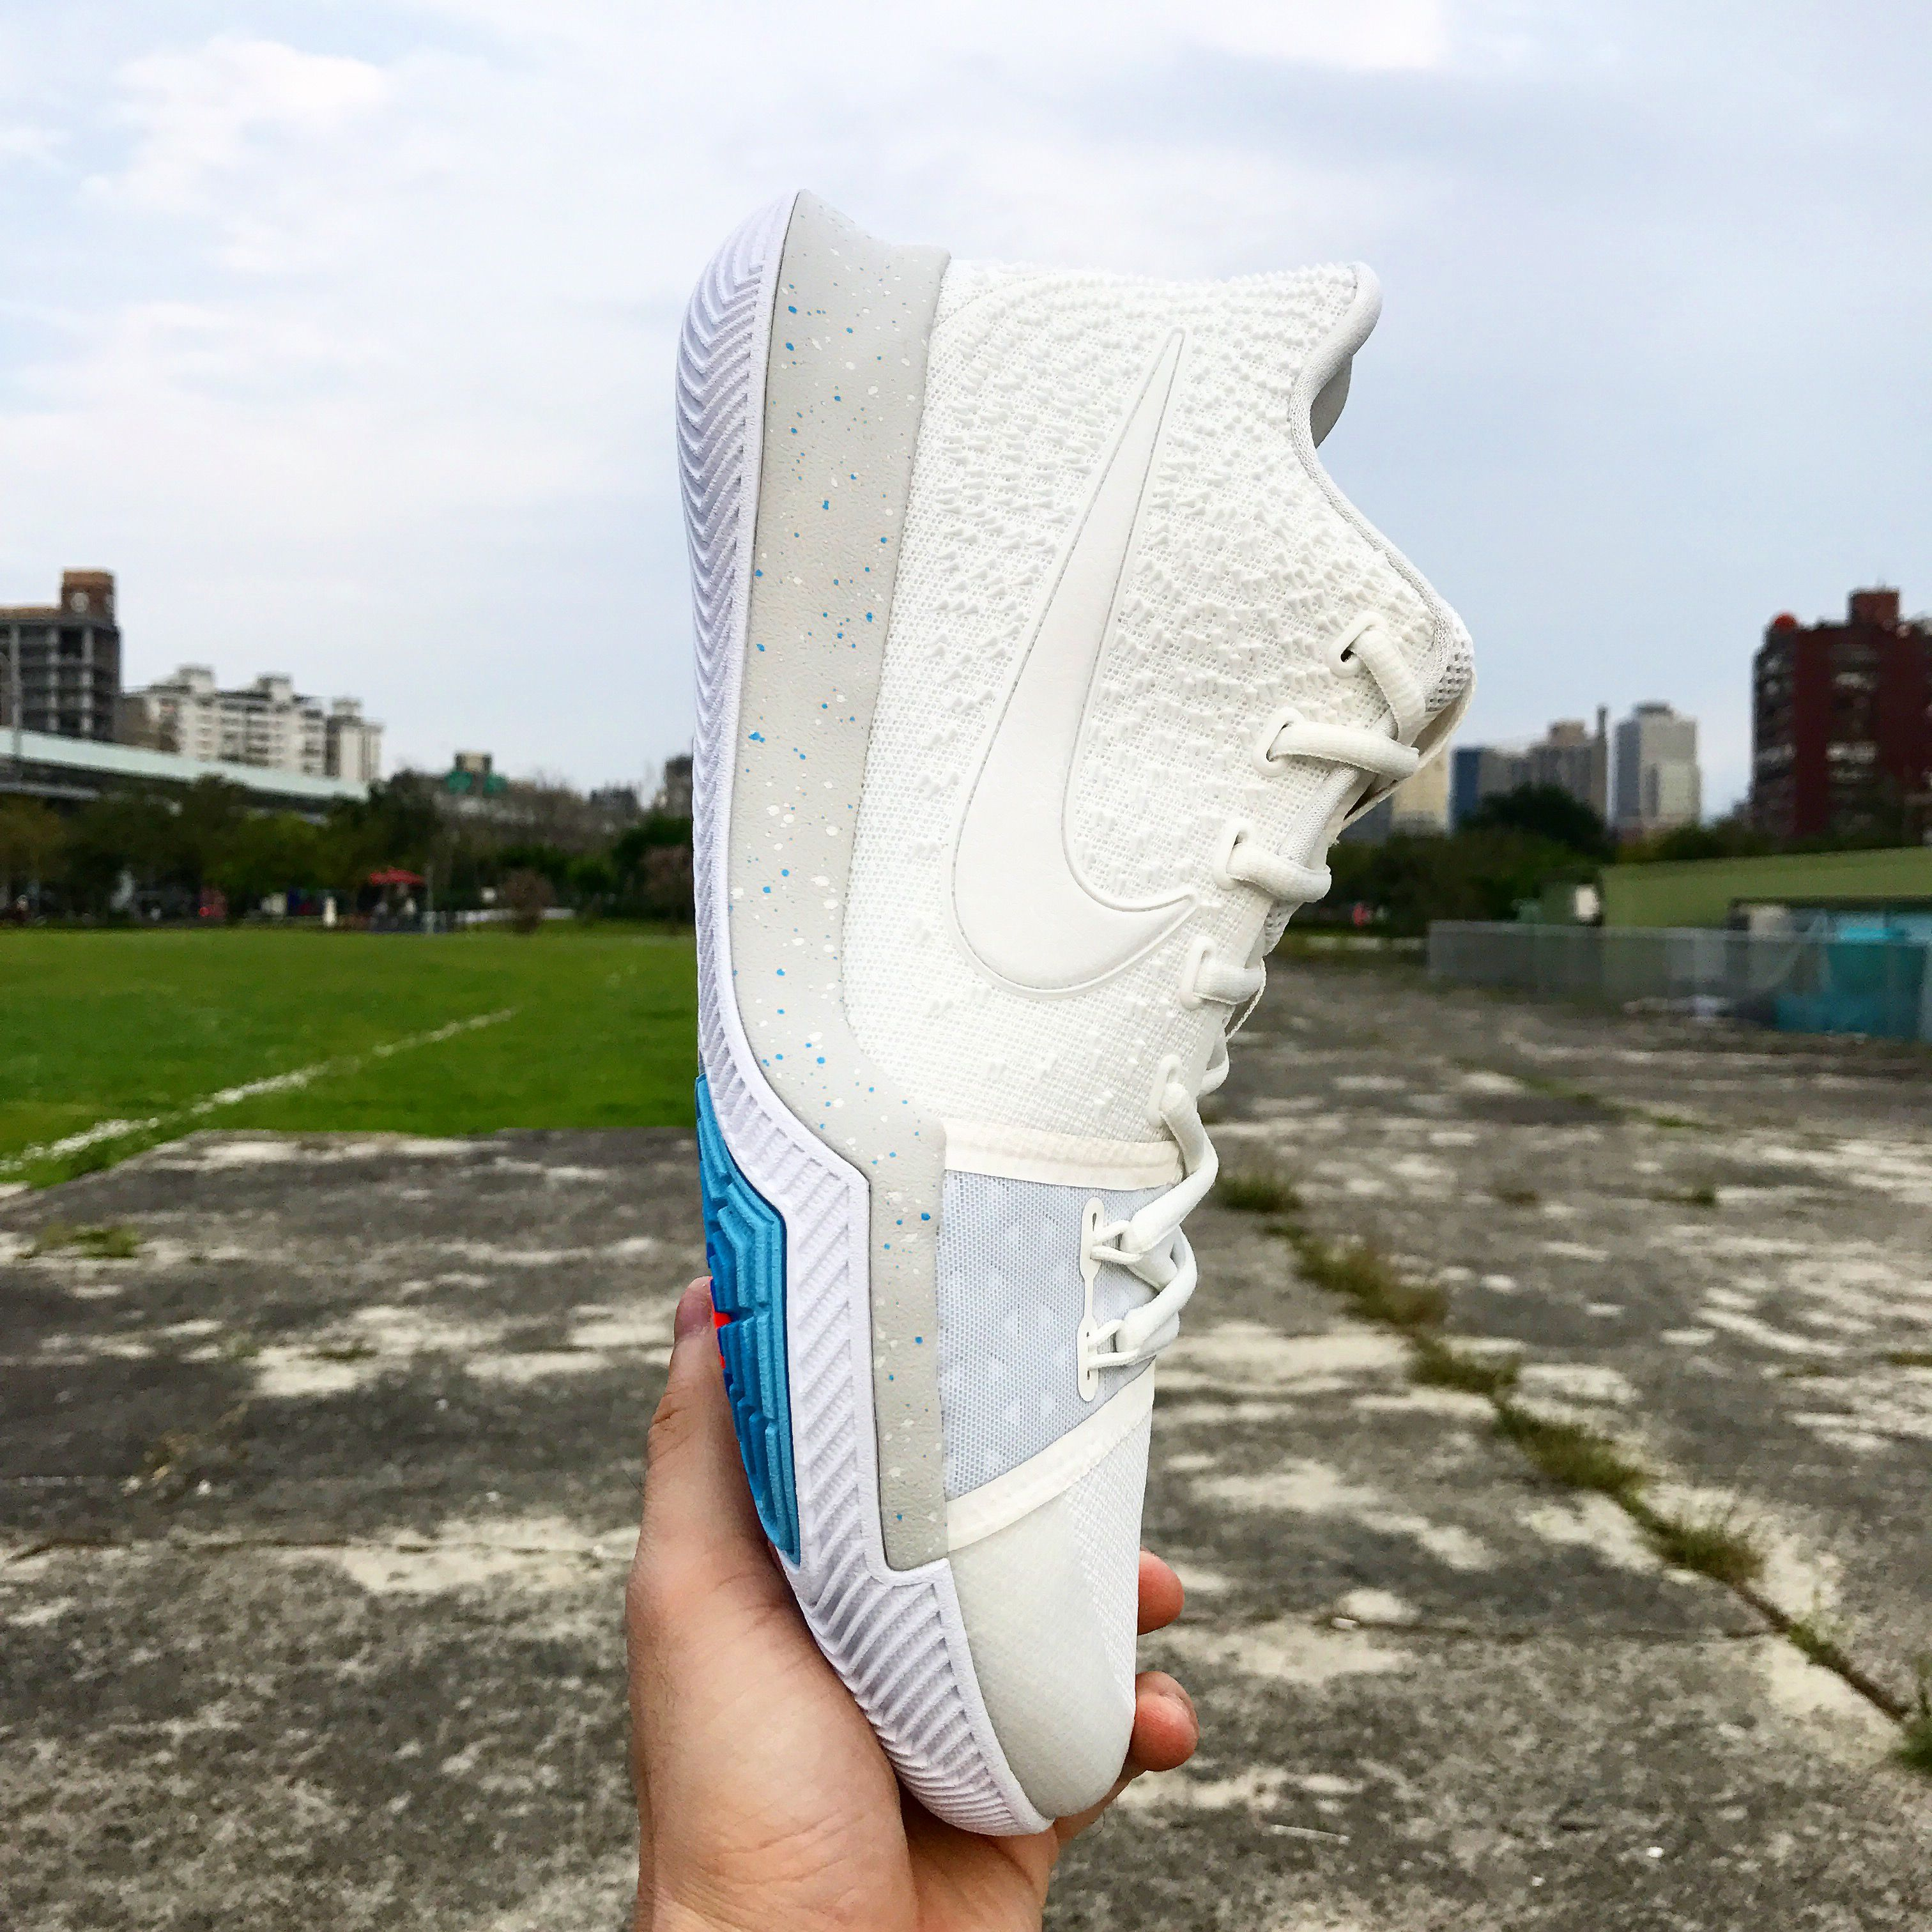 89e959422bf4 3 is better than 2 for Kyrie summer pack. Ivory theme with could blue  outsold. -- Nike Kyrie 3